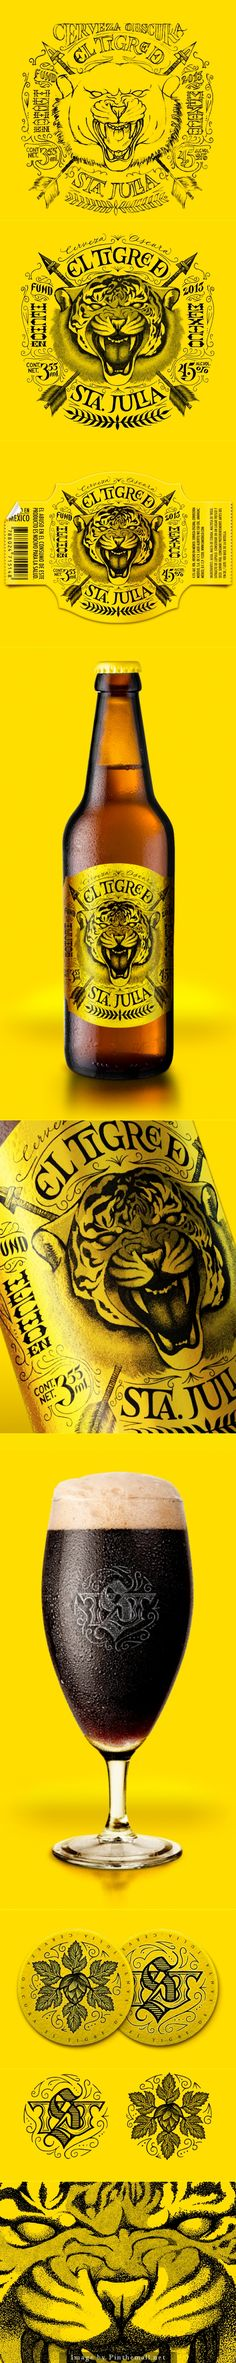 El Tigre de Santa Julia Designer: Christian Antolin Country: United States PD